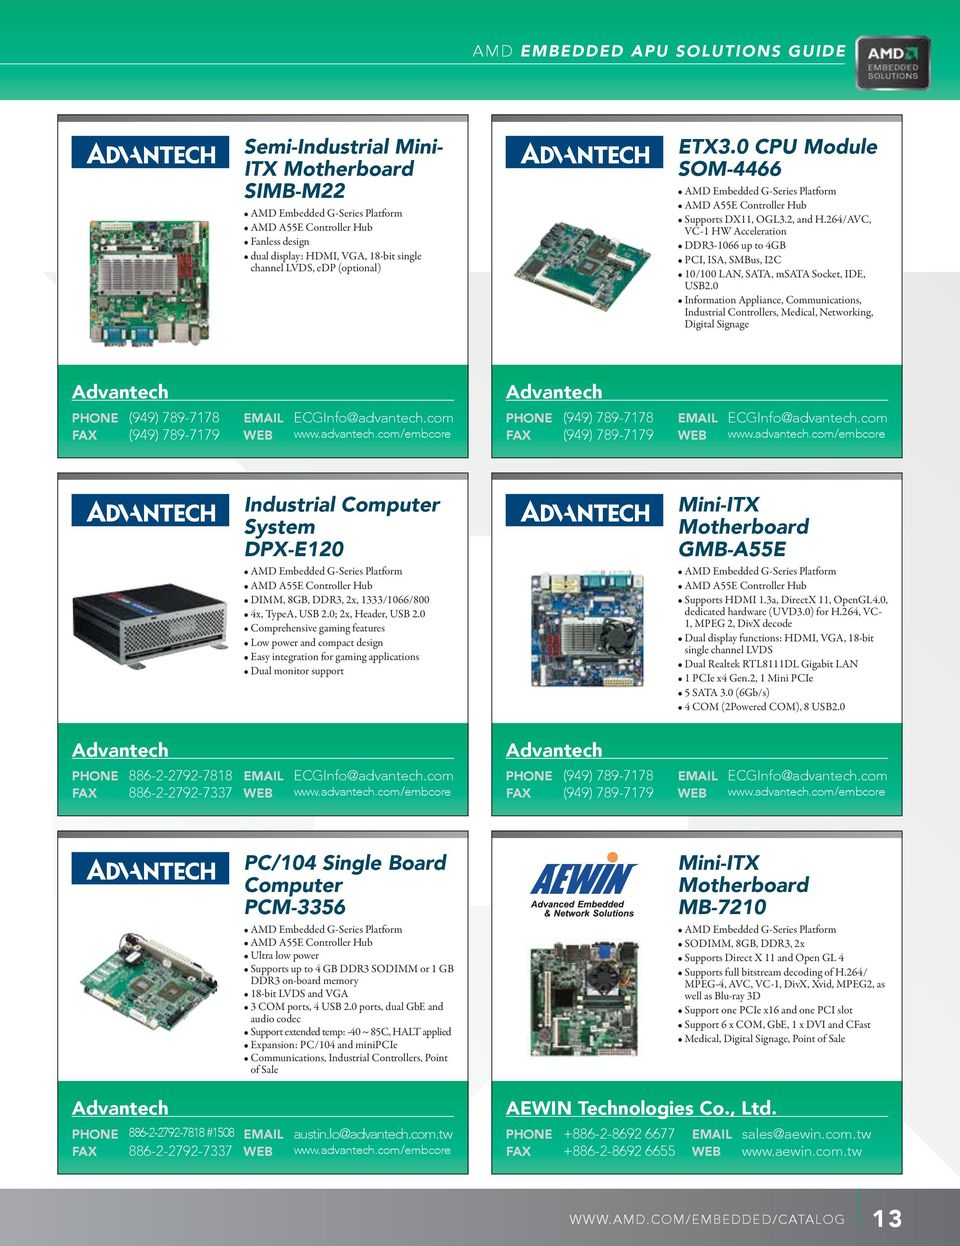 0 Information Appliance, Communications, Industrial Controllers, Medical, Networking, Digital Signage Advantech PHONE (949) 789-7178 EMAIL ECGInfo@advantech.